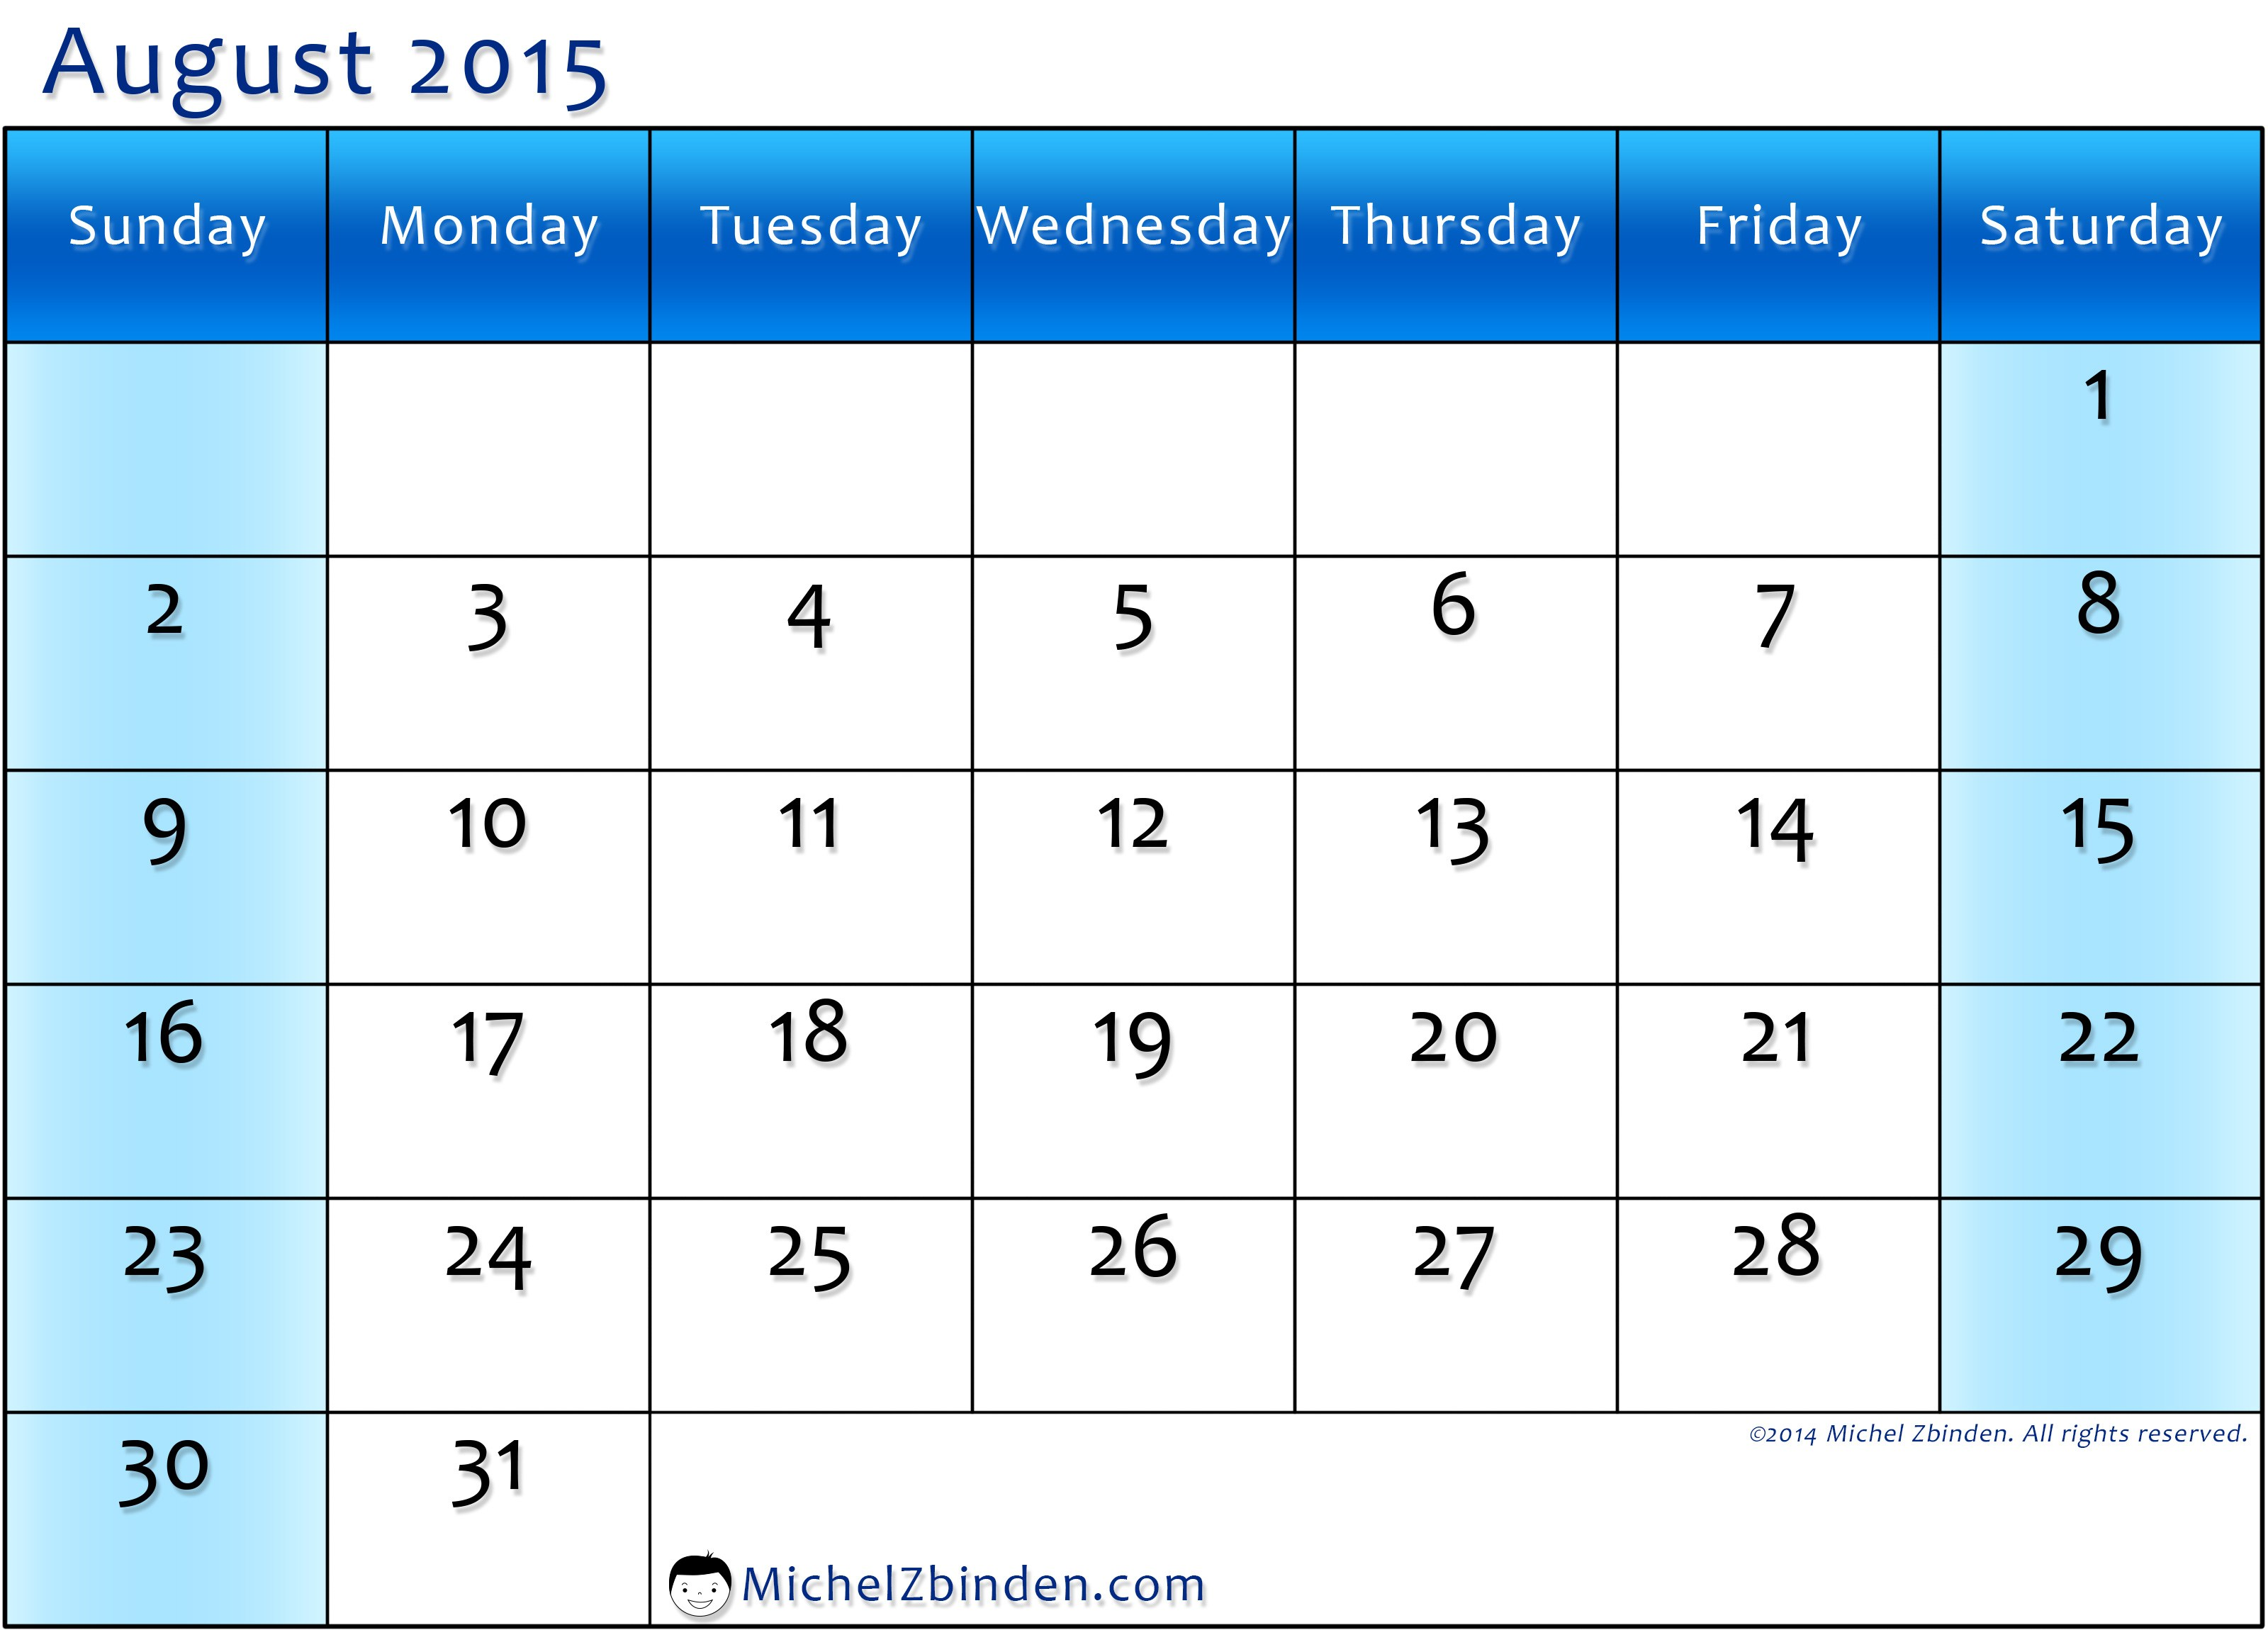 August 2015 calendar clipart picture royalty free download August calendar clipart wallpapers - Clipartix picture royalty free download